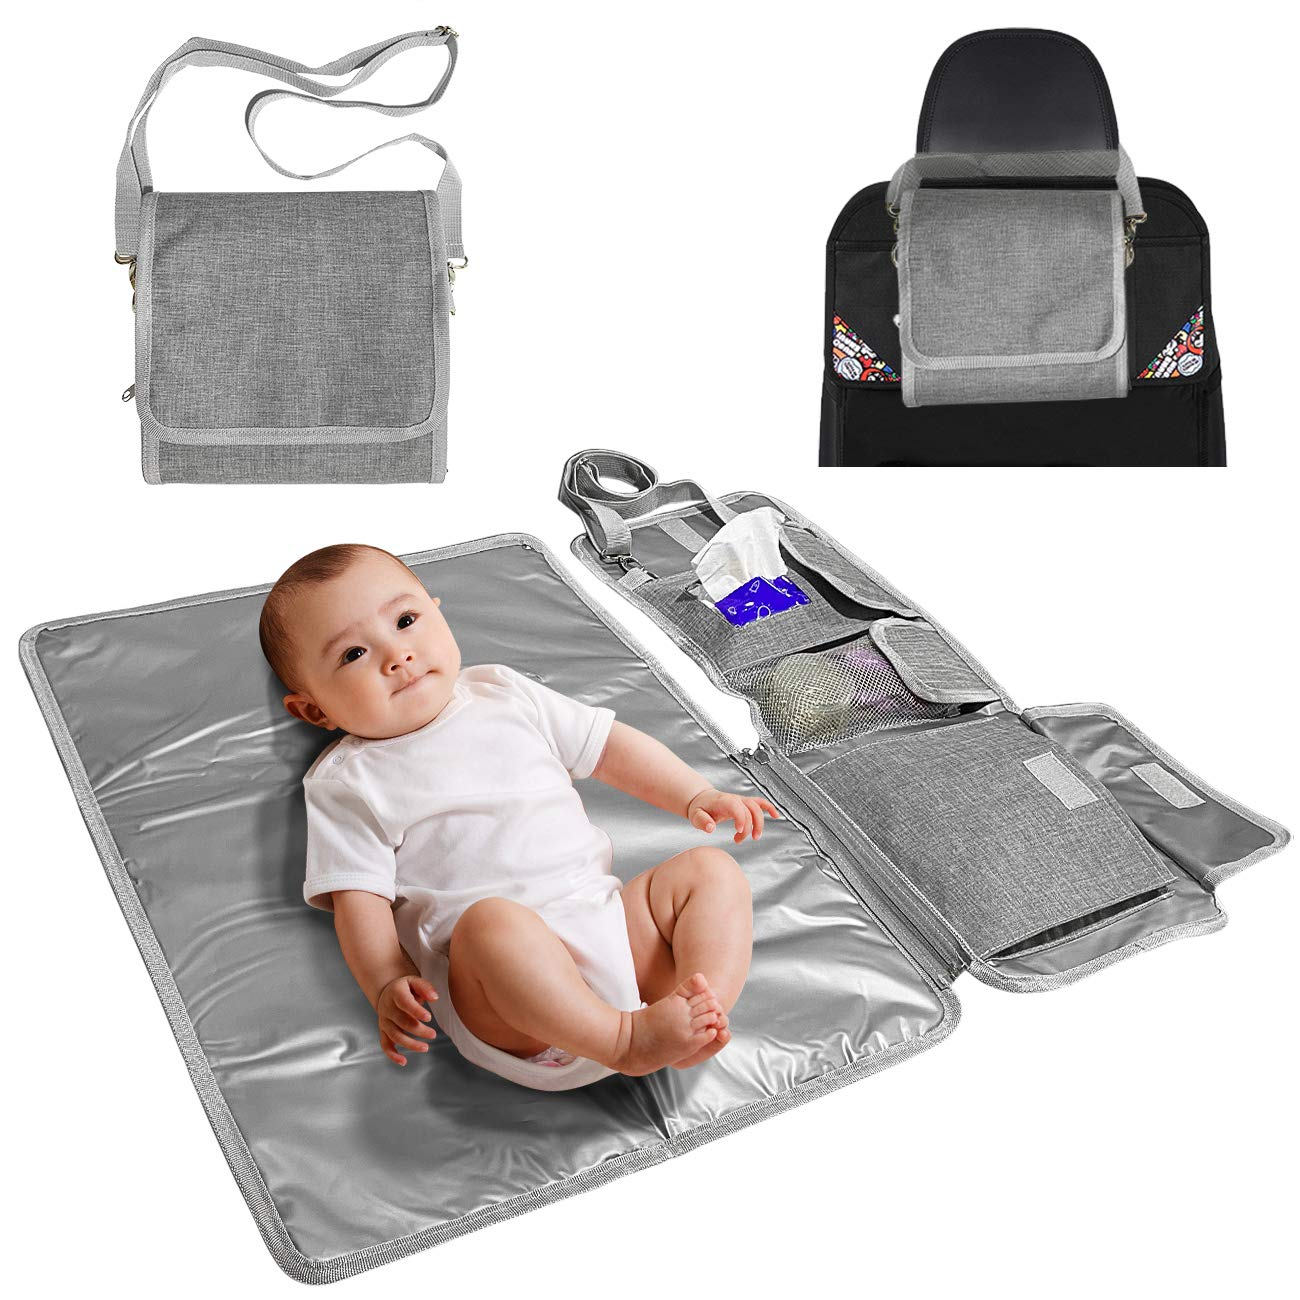 Entyle Portable Changing Pad, Baby Diaper Bag for Newborn Boy Girl, Lightweight Foldable Travel Mat Station, Waterproof Travel Changing Station Bag Kit with Wipes Pocket(Grey)